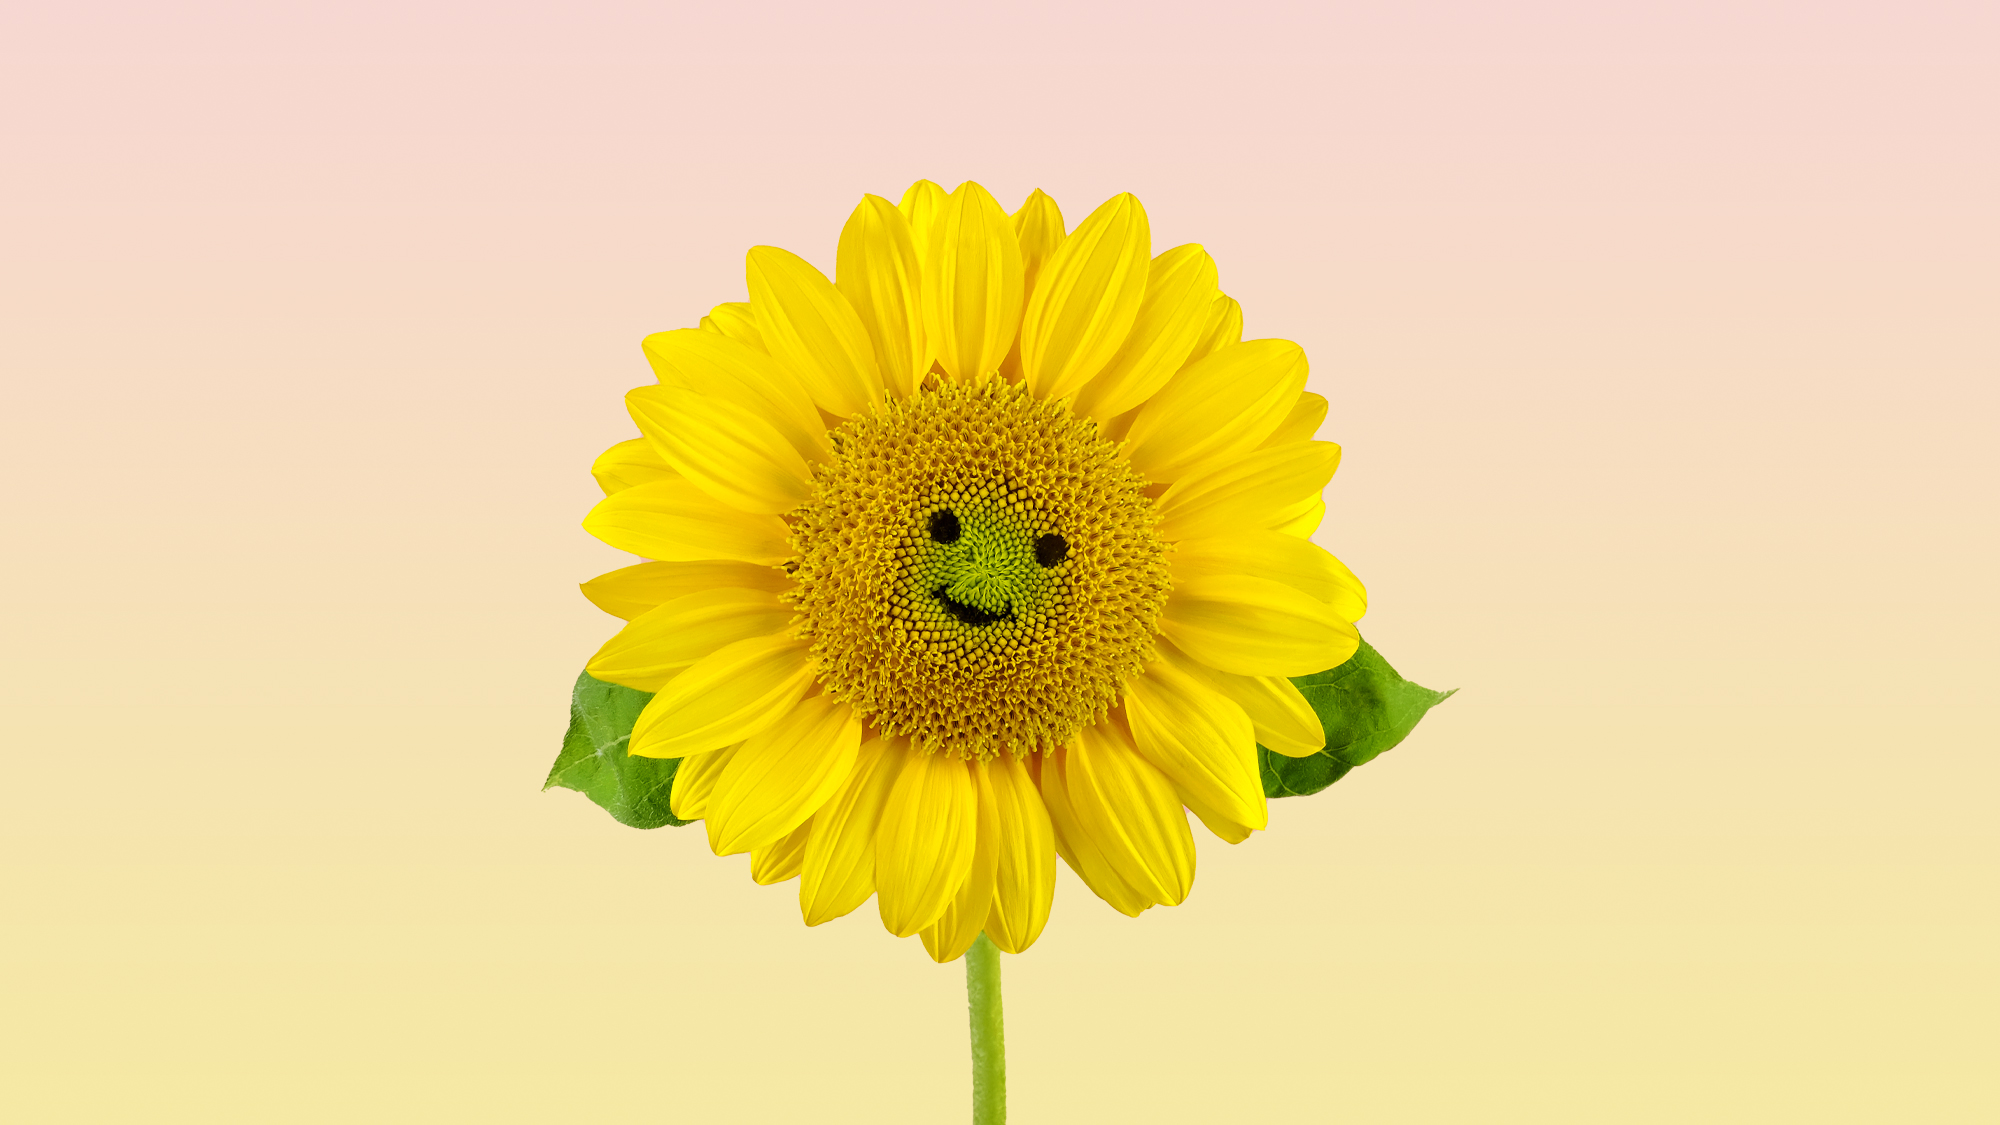 A smiling sunflower